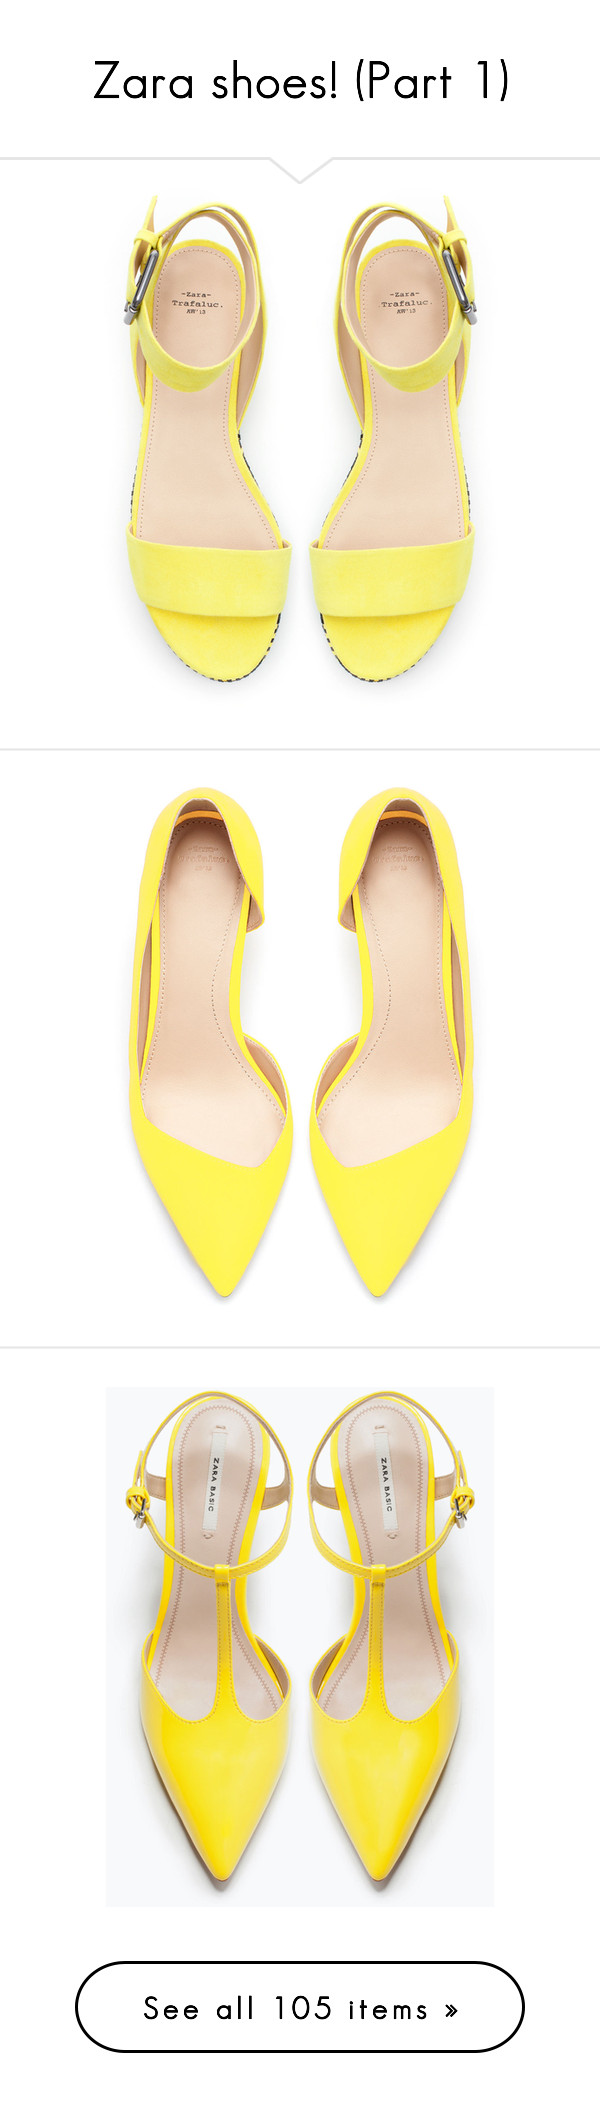 """""""Zara shoes! (Part 1)"""" by blueladybird ❤ liked on Polyvore featuring shoes, sandals, heels, flats, yellow, zara shoes, zara sandals, heeled flats, heeled sandals ve yellow shoes"""